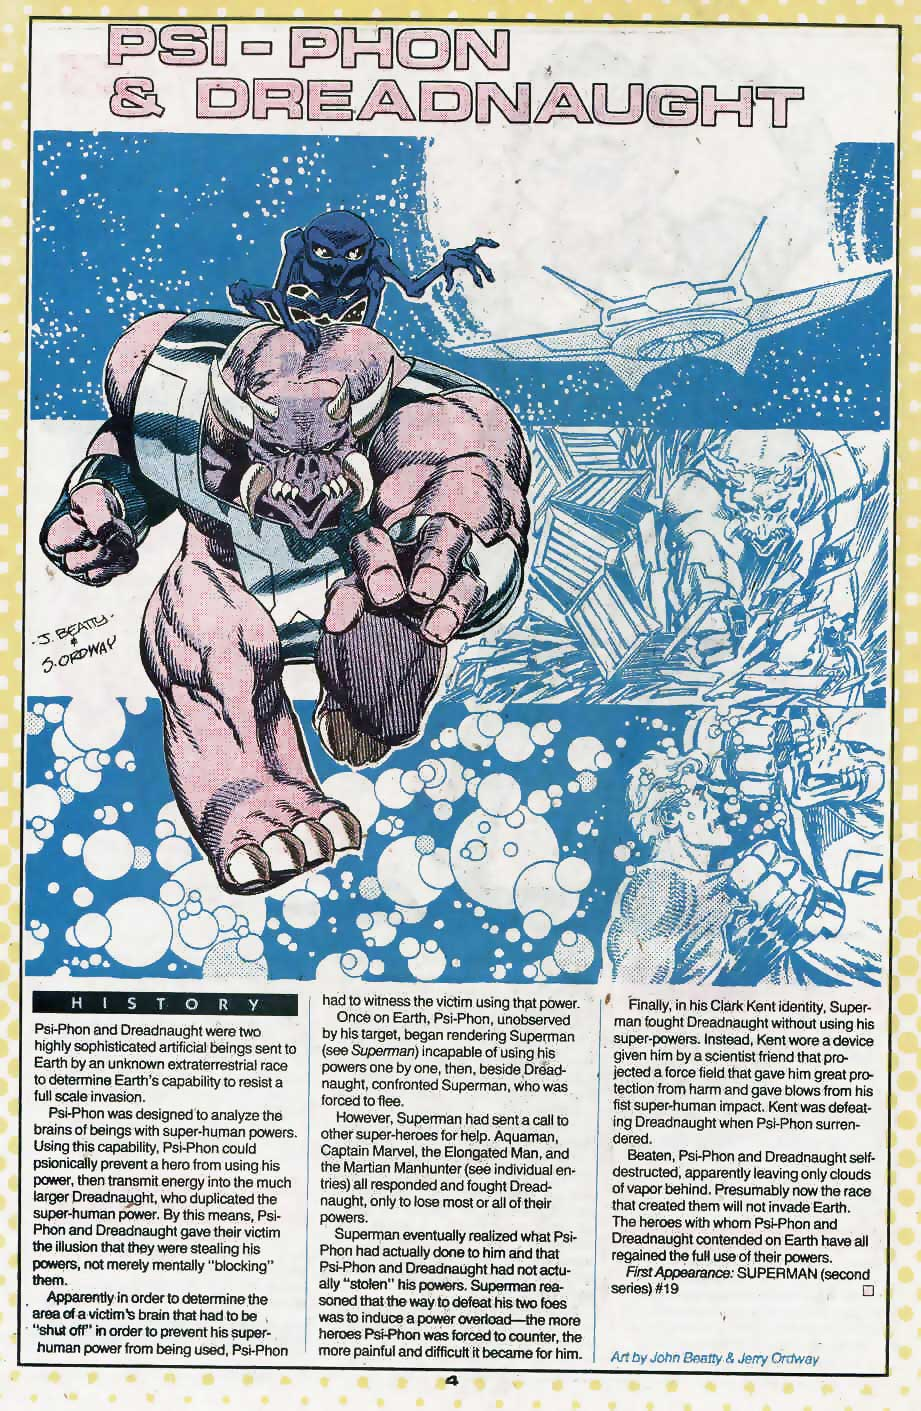 Who's Who Update 88 #3 Psi-Phon and Dreadnaught by John Beatty and Jerry Ordway